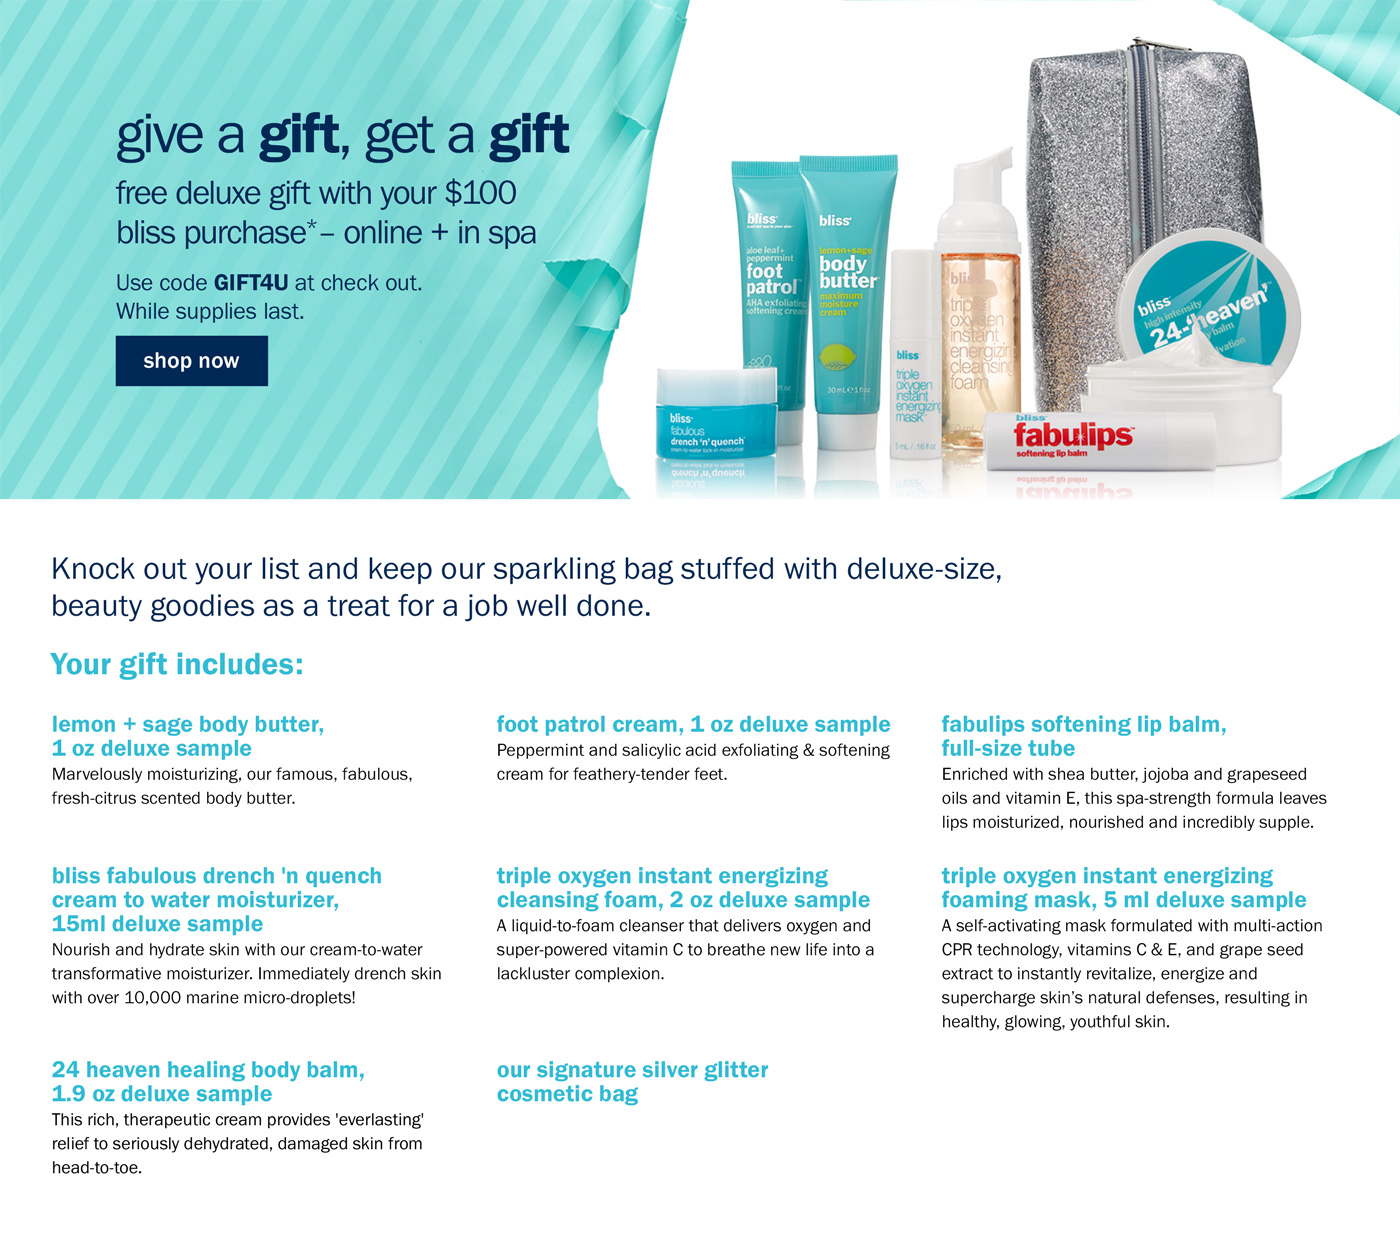 Receive a free 8-piece bonus gift with your $100 Bliss purchase